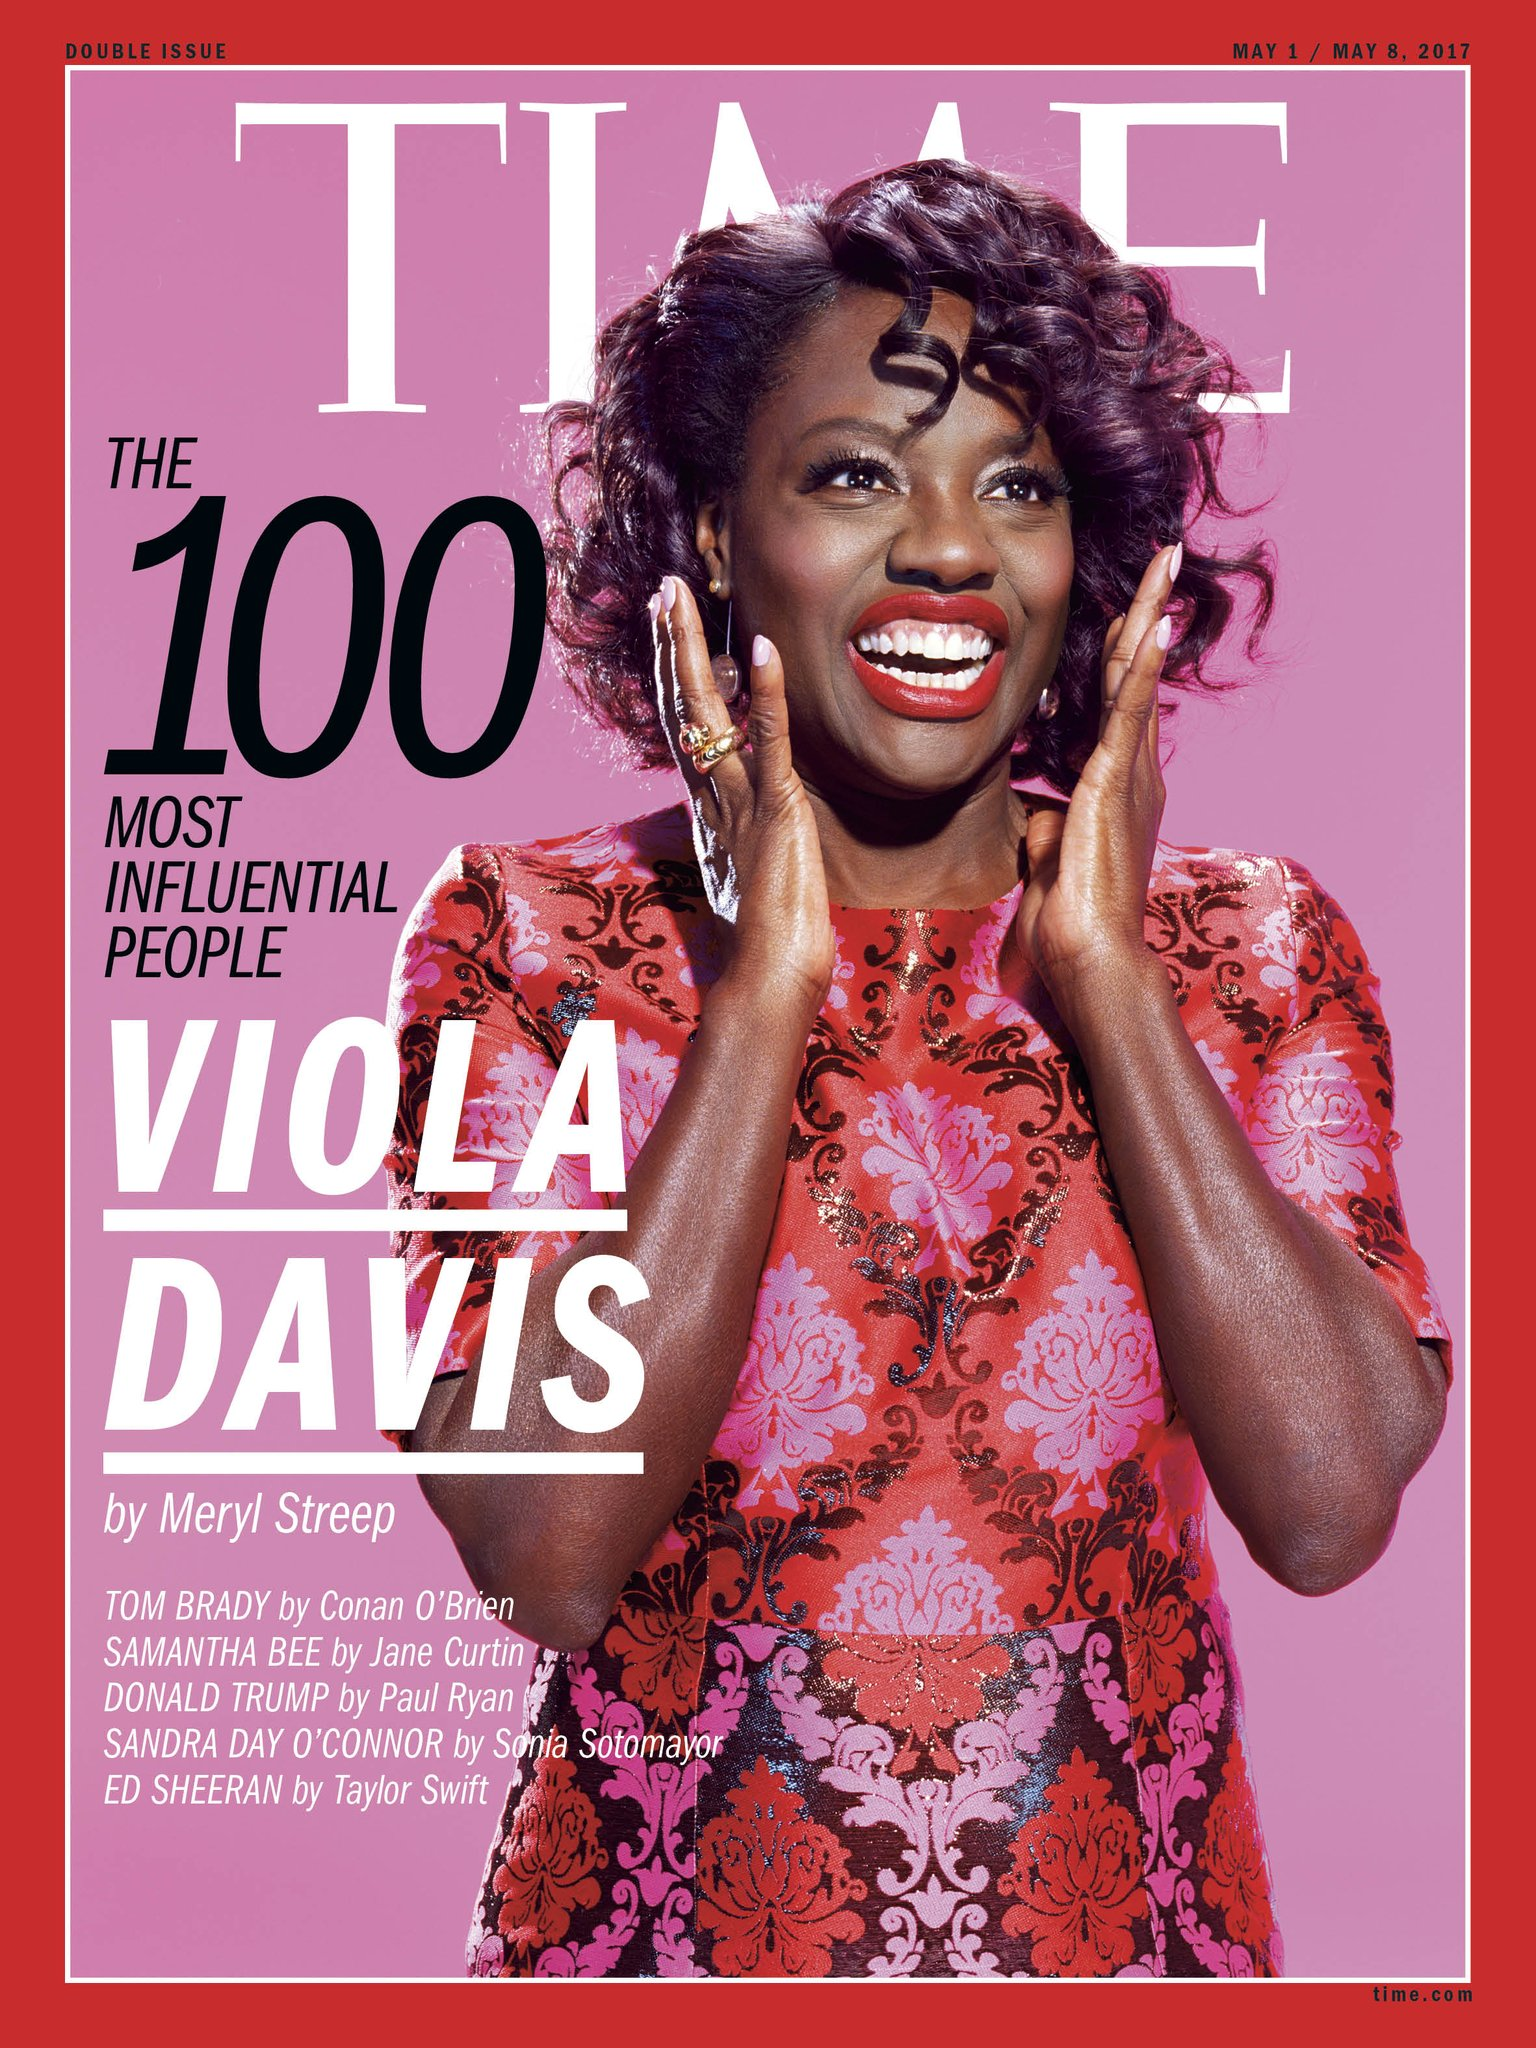 """Meryl Streep on @ViolaDavis: """"Her gifts as an artist are unassailable, undeniable, deep and rich and true"""" #TIME100 https://t.co/pSt3KYqNXV https://t.co/m59y5iDRNQ"""